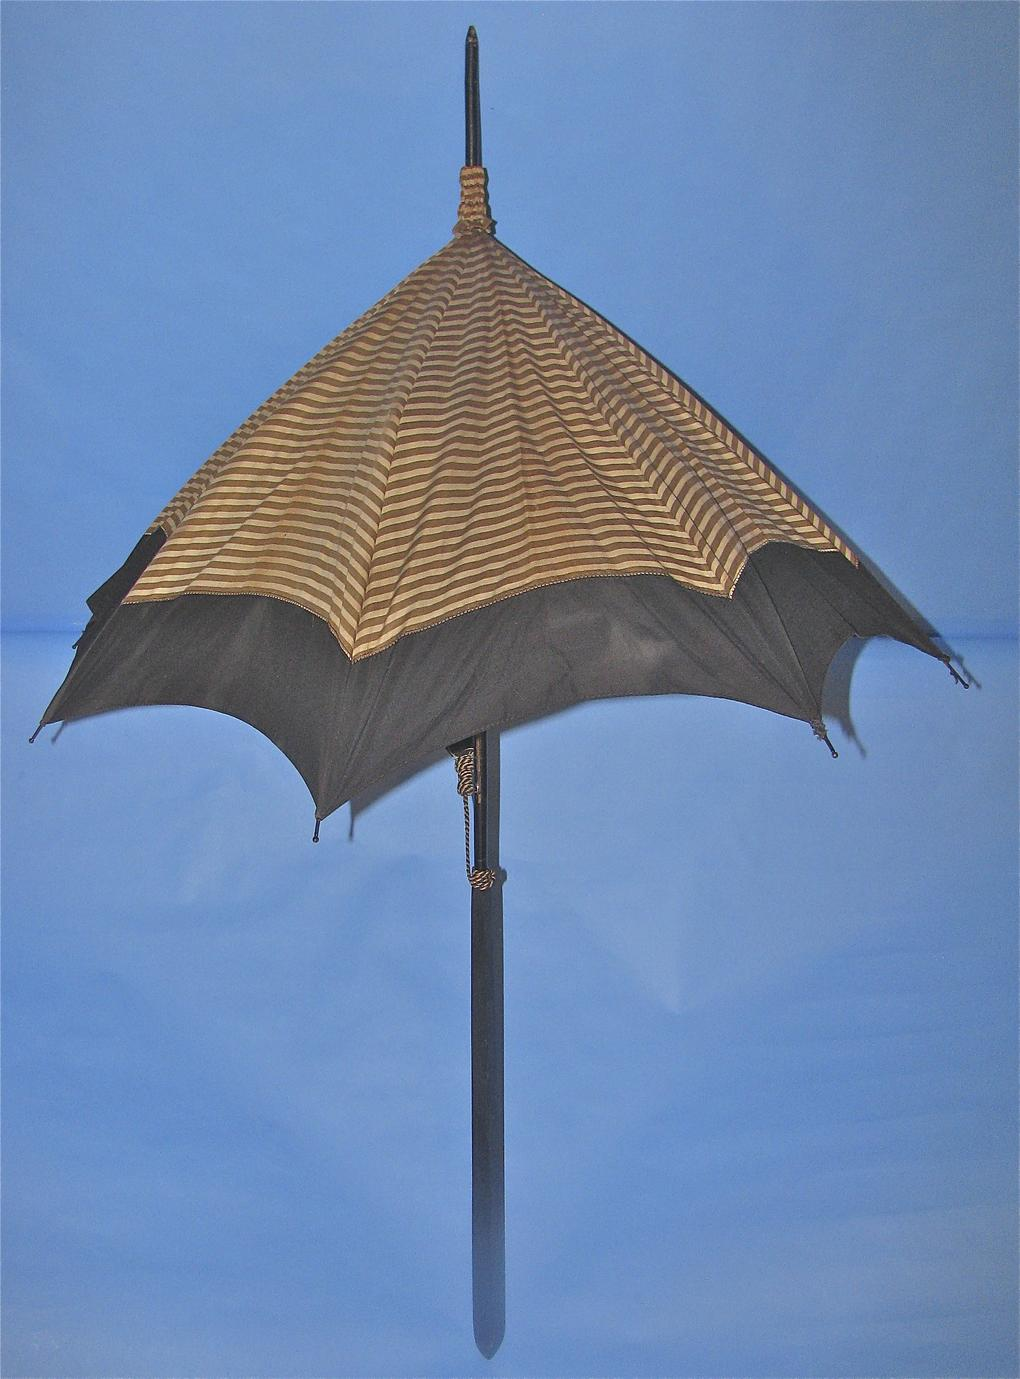 Brown and cream striped parasol